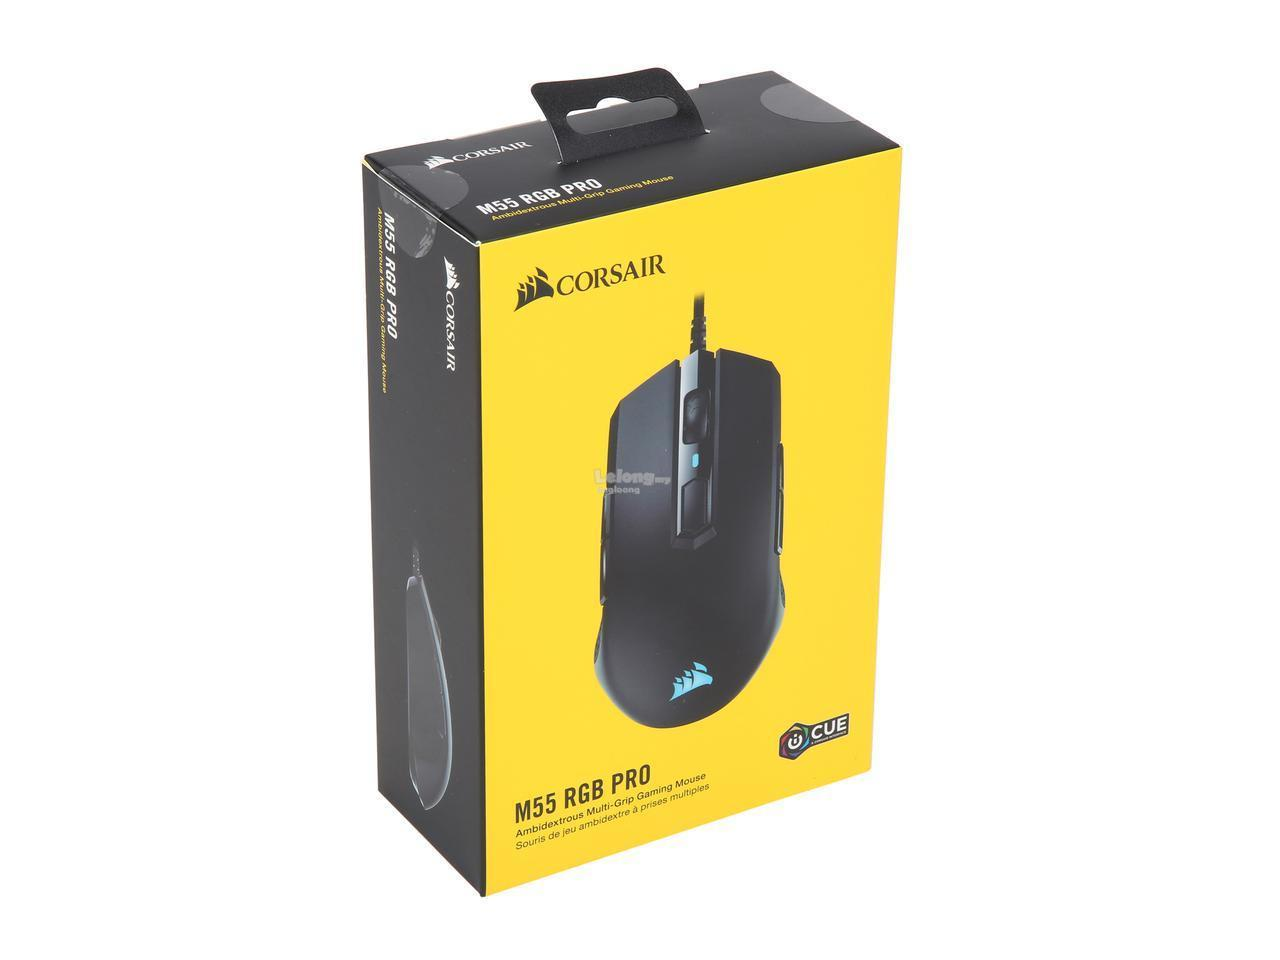 # CORSAIR M55 RGB PRO Ambidextrous Gaming Mouse #